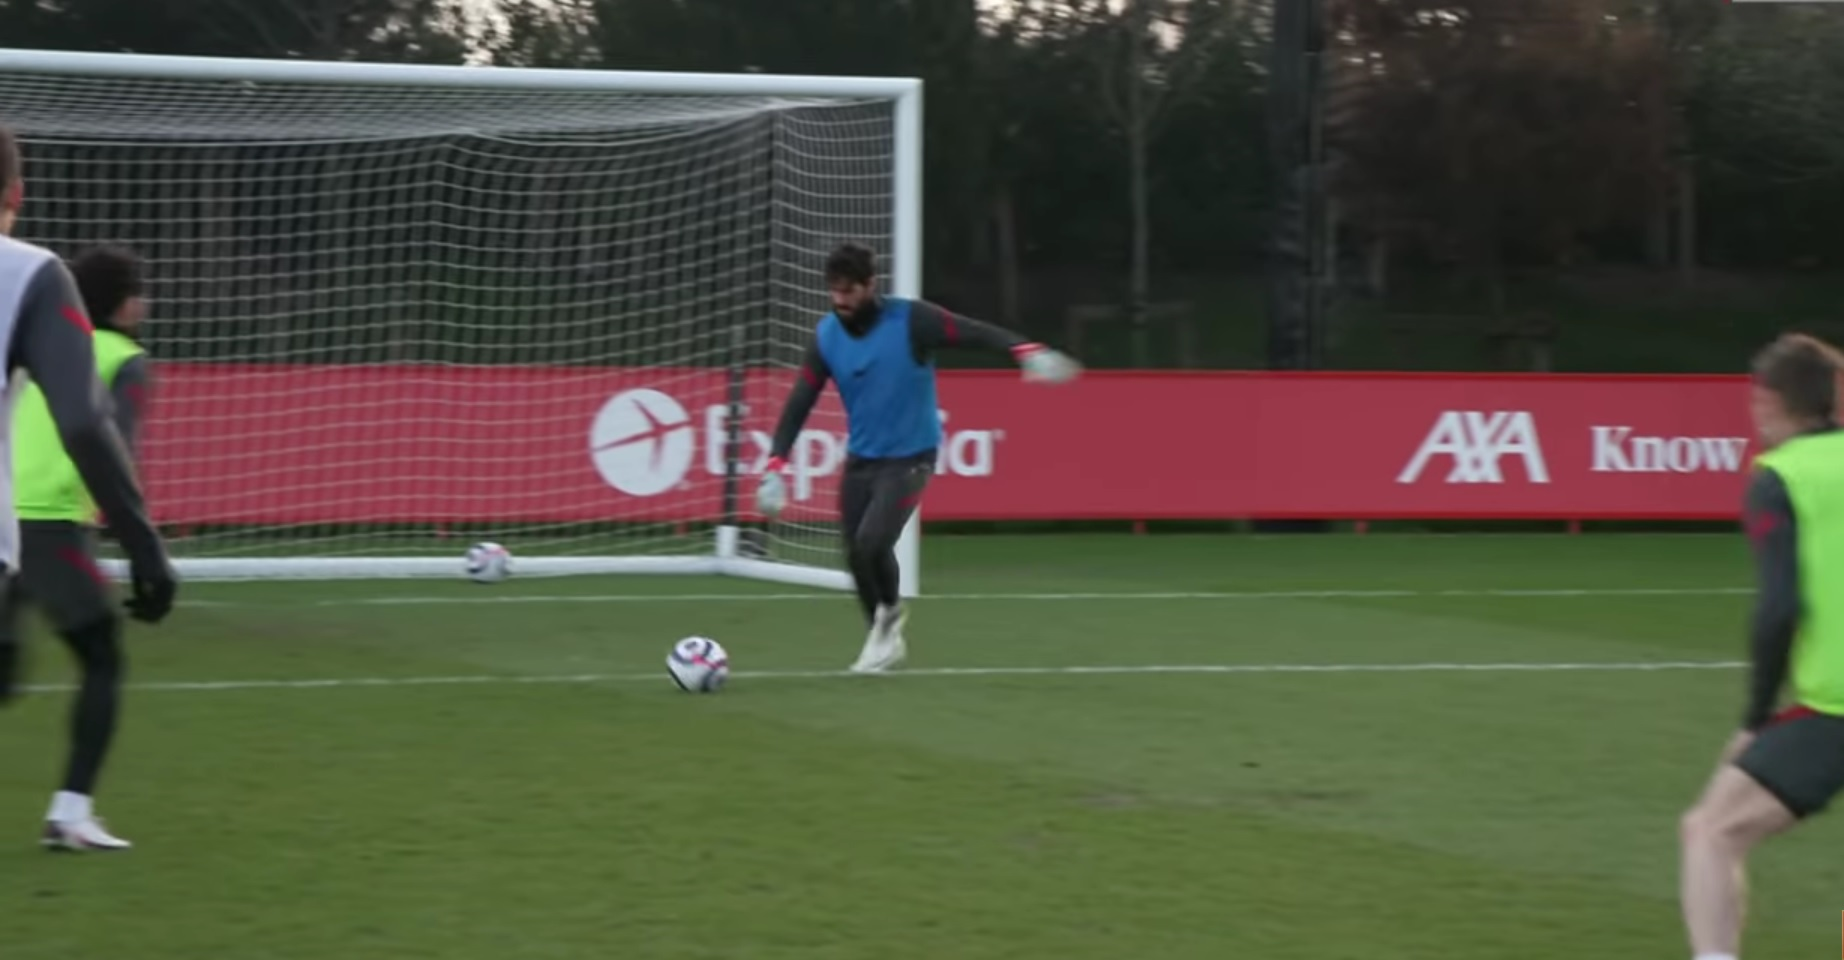 (Video) Alisson scores past Adrian in training and celebrates with knee slide